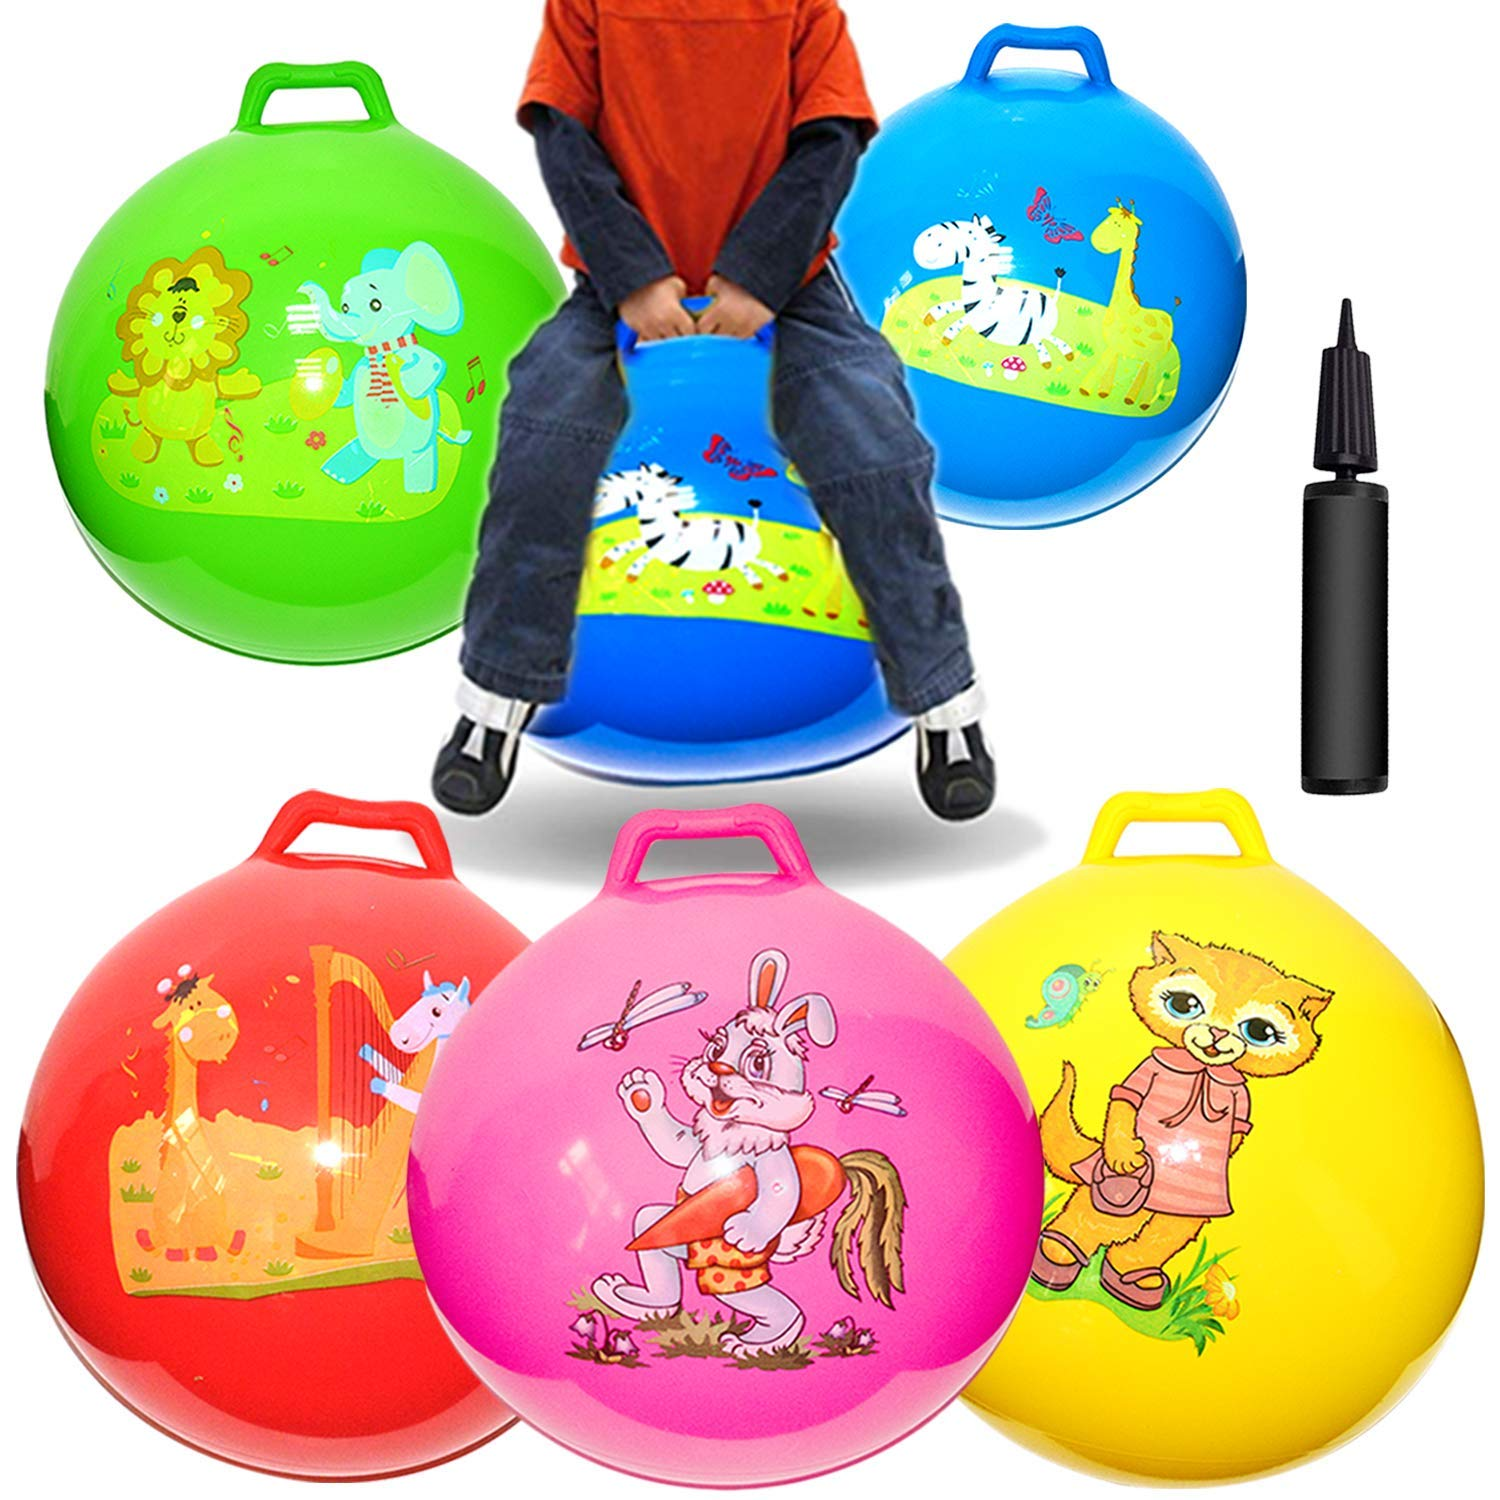 Space Hopper Hop Bouncy Jumping Ball Handle Kids Ages 3-6 Ride On Toys Hoppers Games, 5 Pack 18 inch Hopper Balls Pump Kids School Family Team Sports Birthday Party Favors